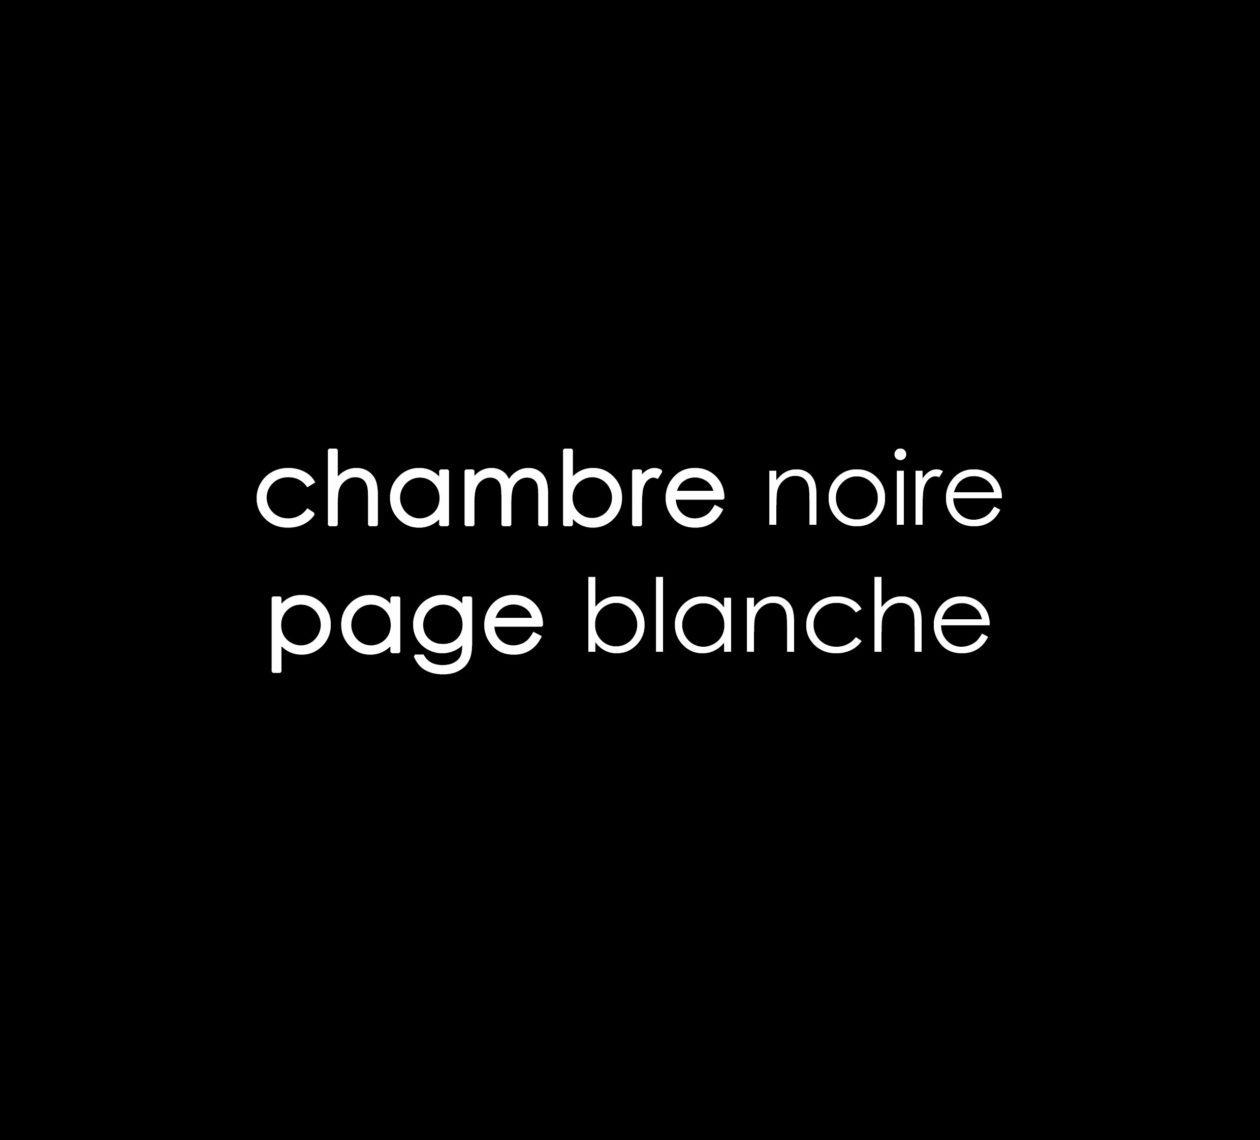 CHAMBRE NOIRE PAGES BLANCHES